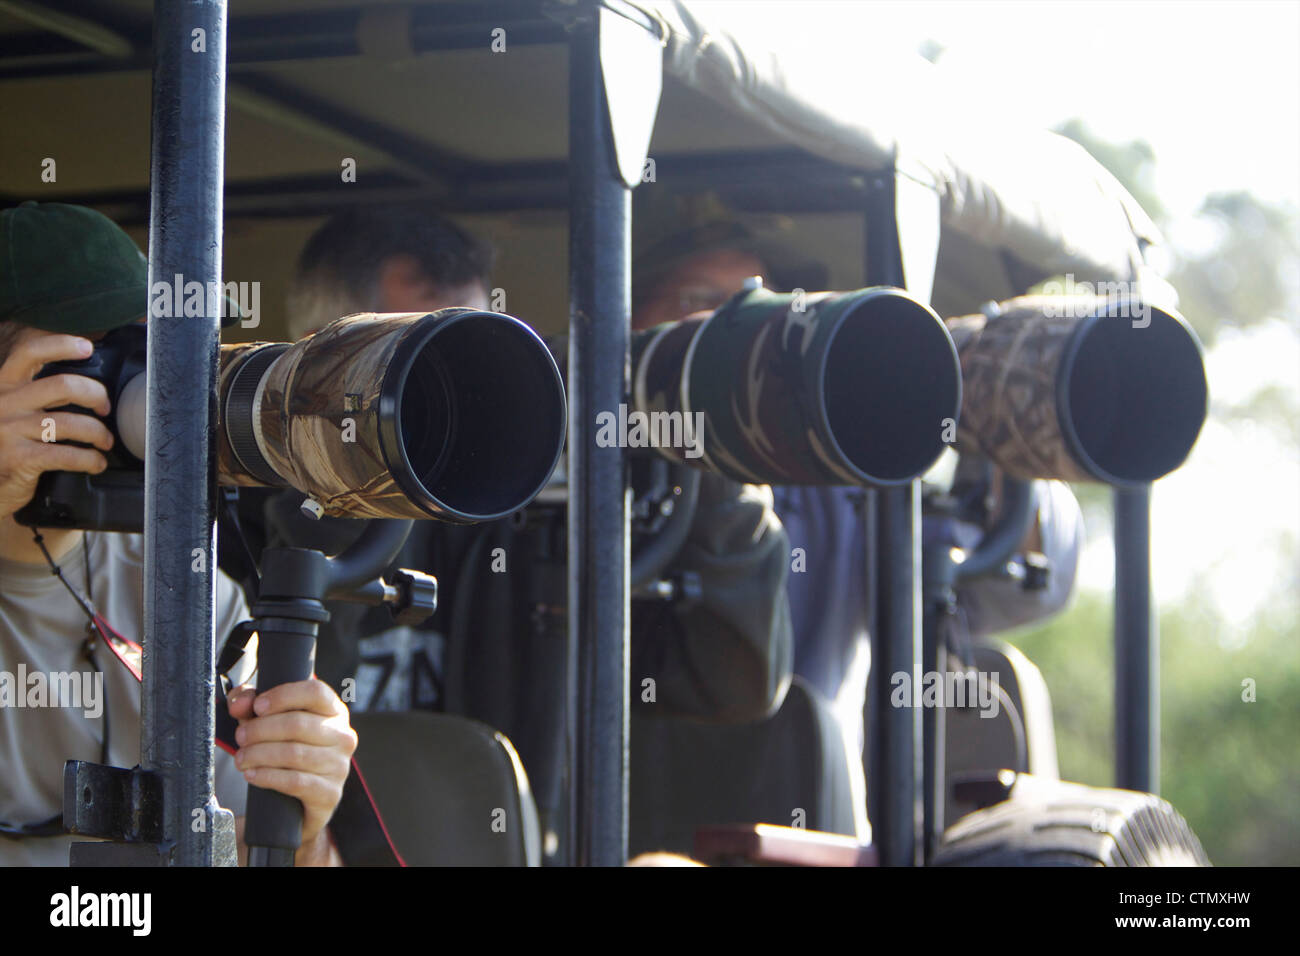 Photographers using large lenses while on safari, Okavango Delta, Botswana - Stock Image